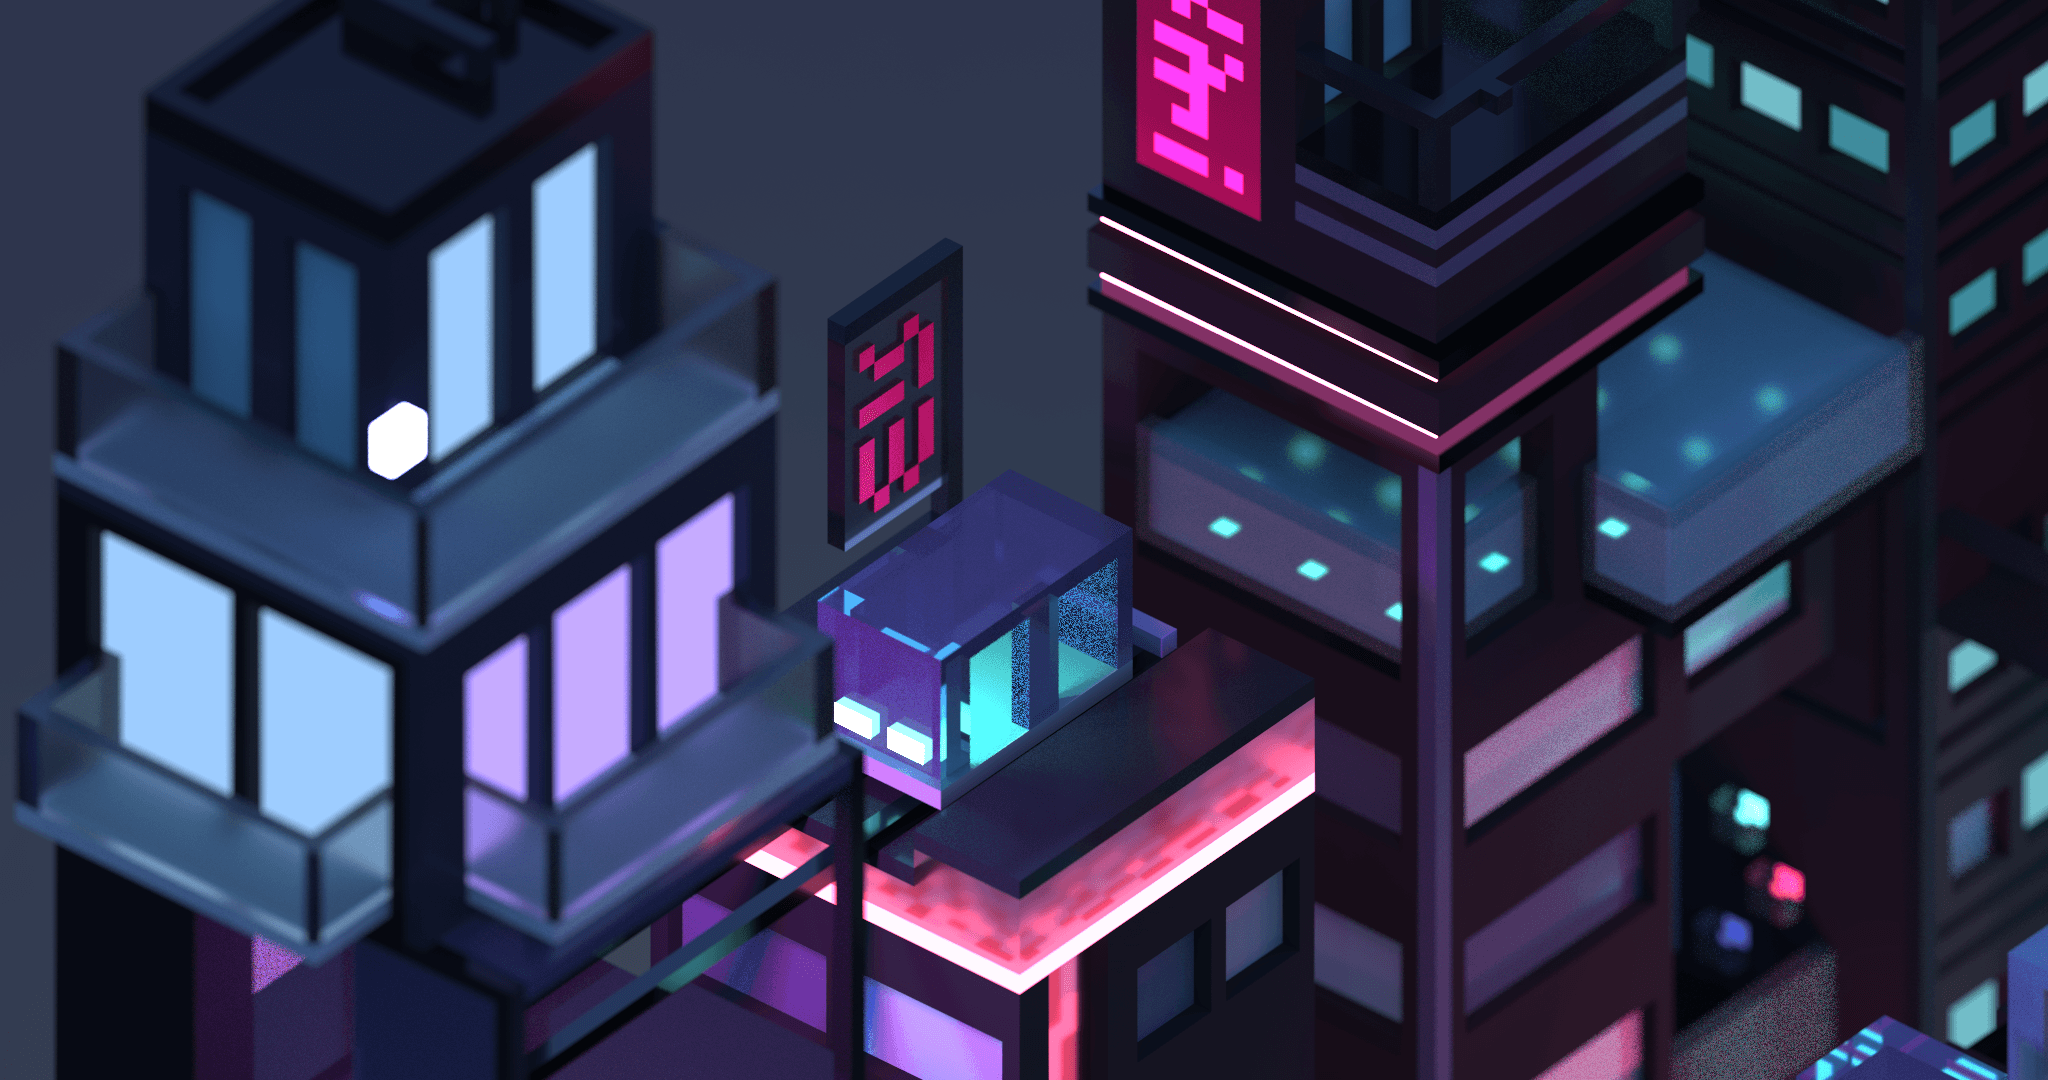 3D isometric city by night by Meg Wehrlen showing a square based city of high rise building with a synthwave/vapowave feel. Software is MagicaVoxel, 3d illustration. This shot includes a highrise vue, a glass elevator, glass sky train, a roof top, trees and building details.